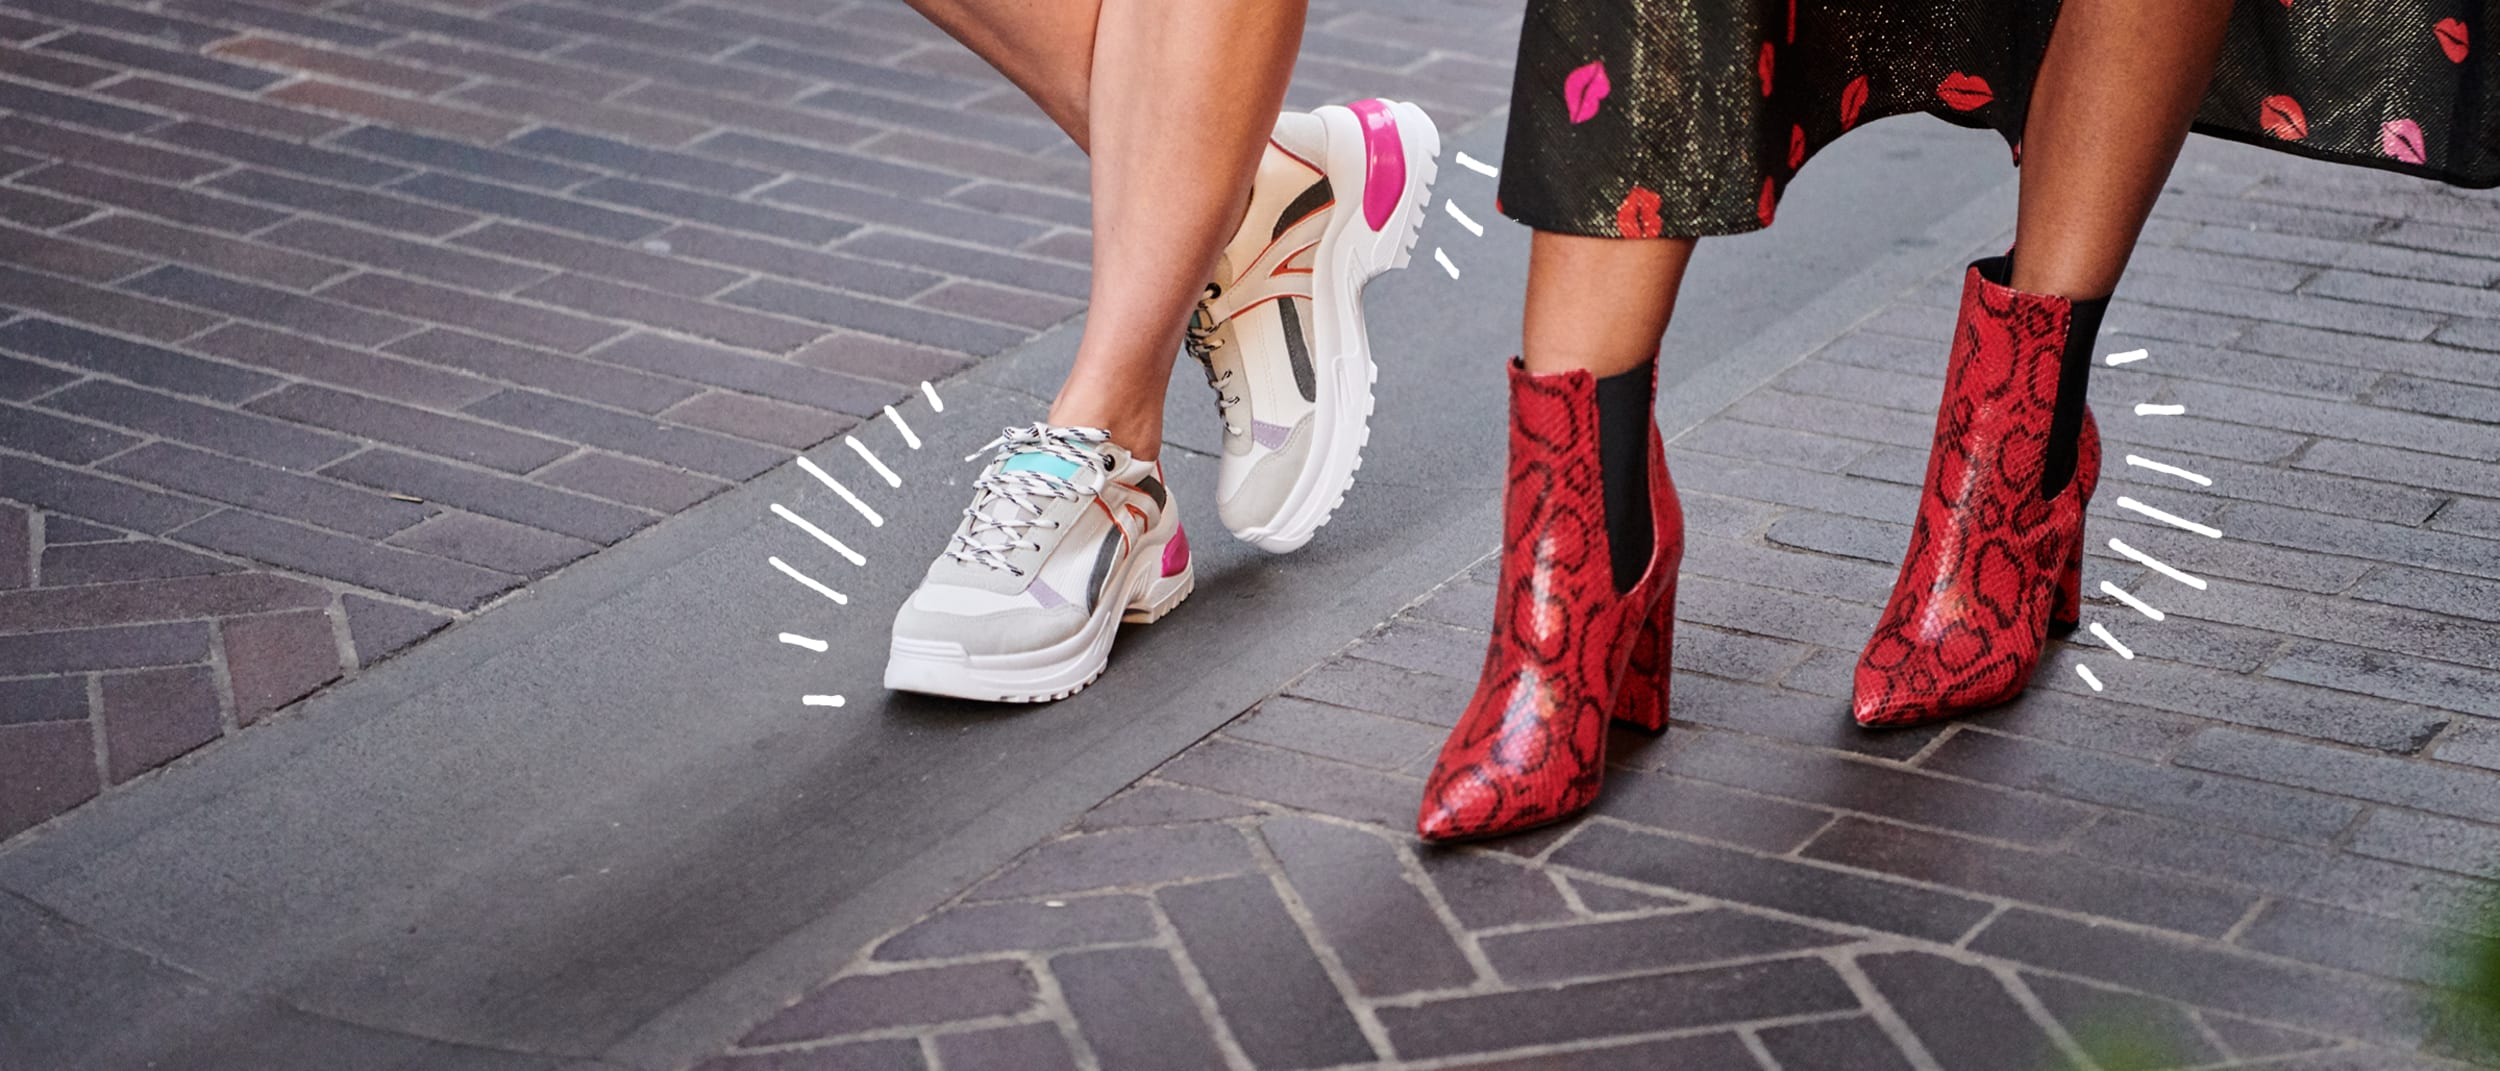 Boot-spiration: AW trends and boots for wider calves